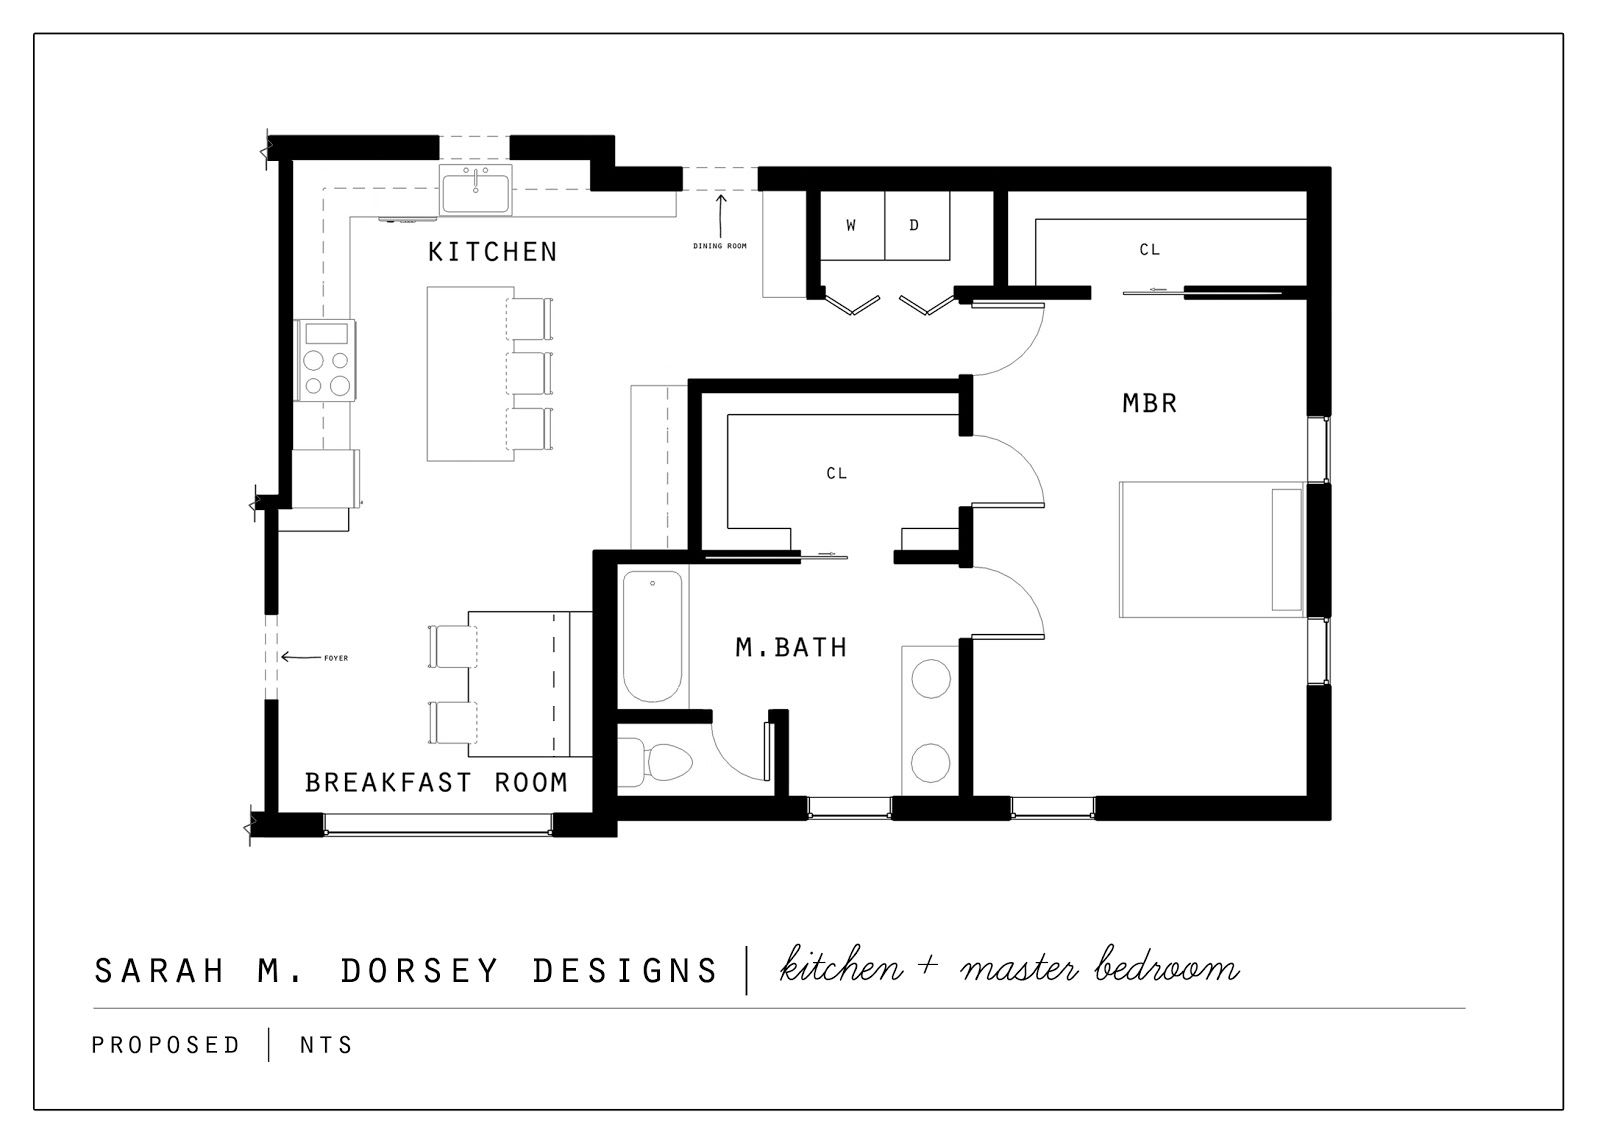 Floor plans for master bedroom additions bedroom addition plans master bedroom suite addition Master bedroom plan dwg